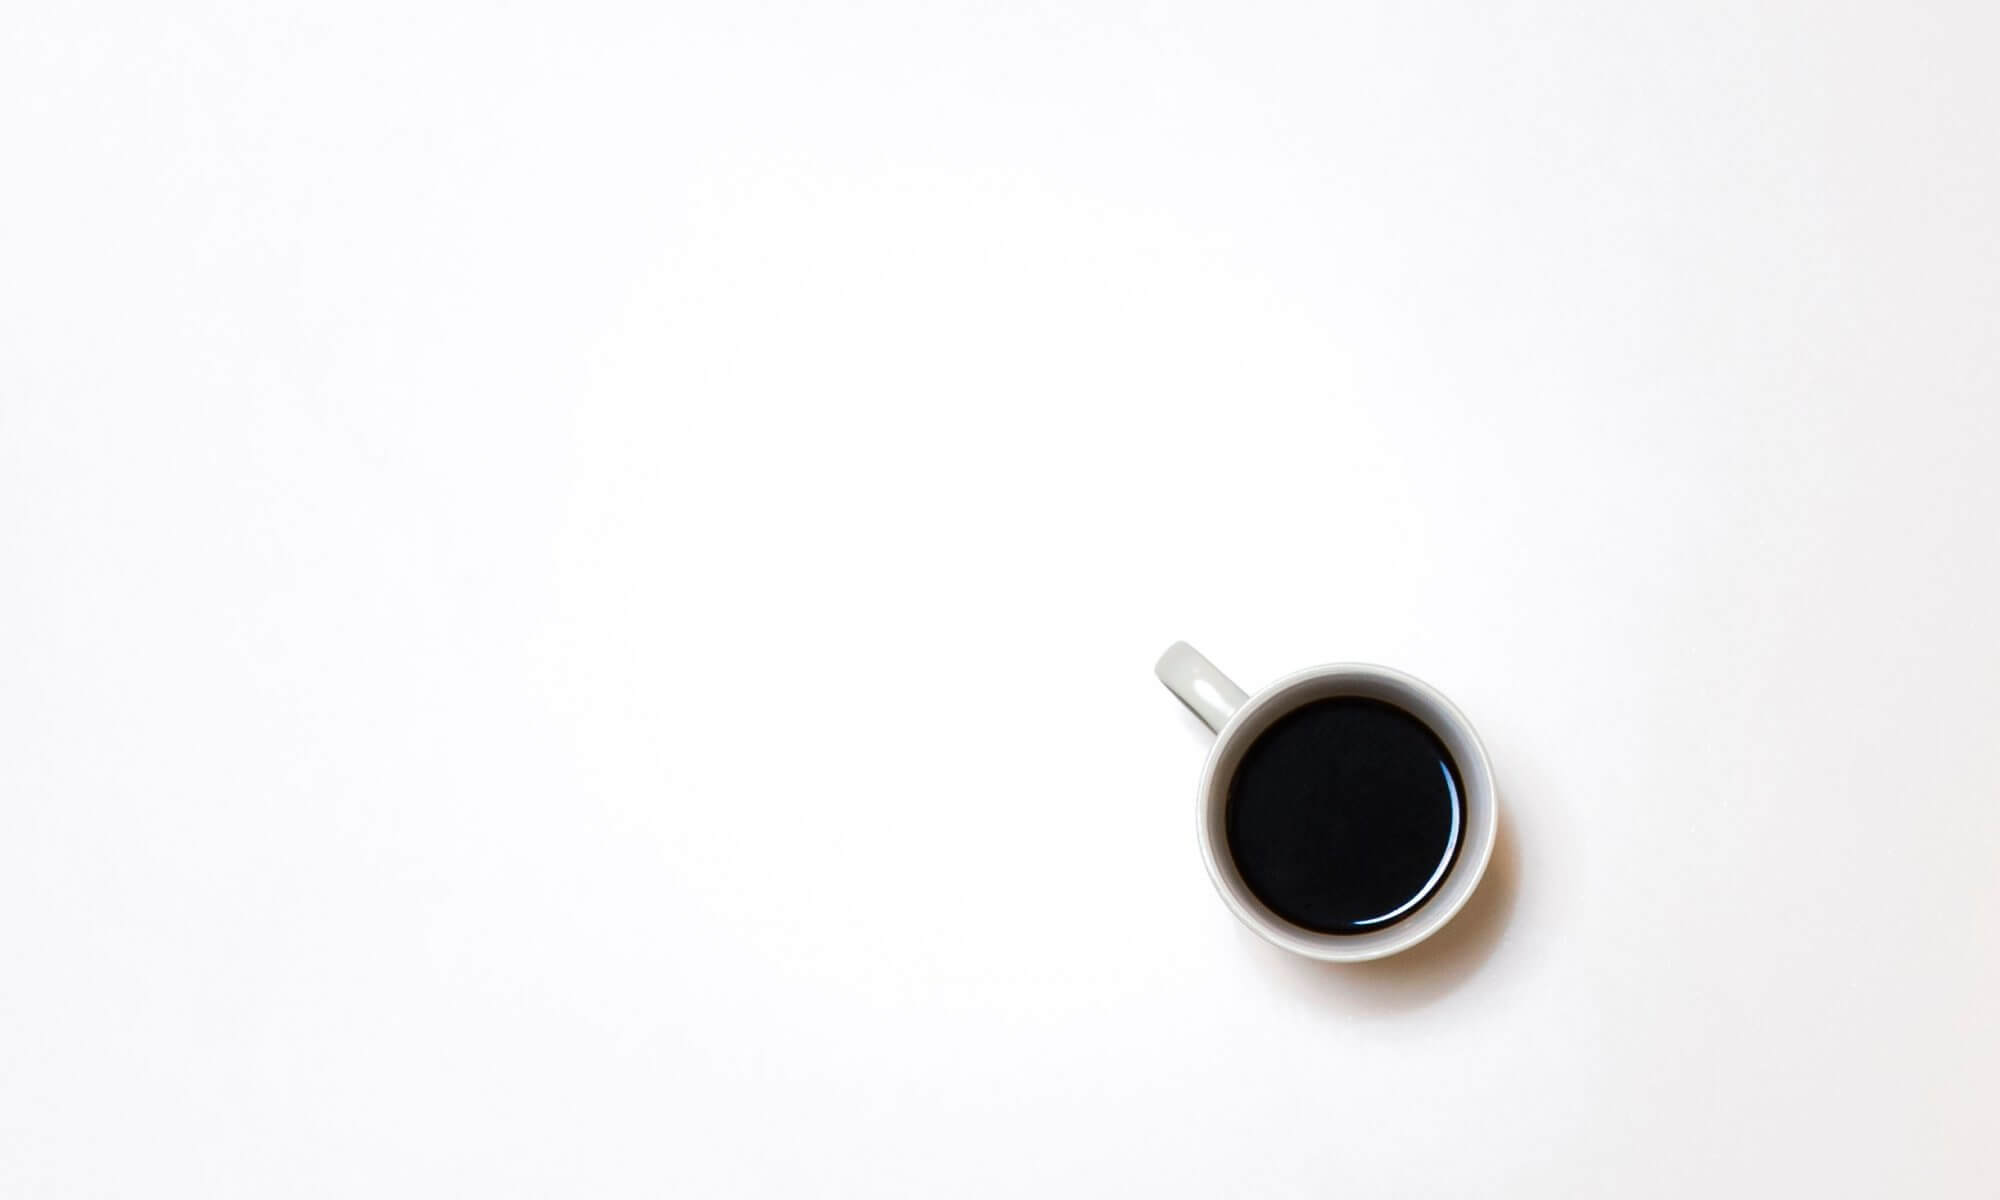 Minimalism Simple Coffee Mug Cup